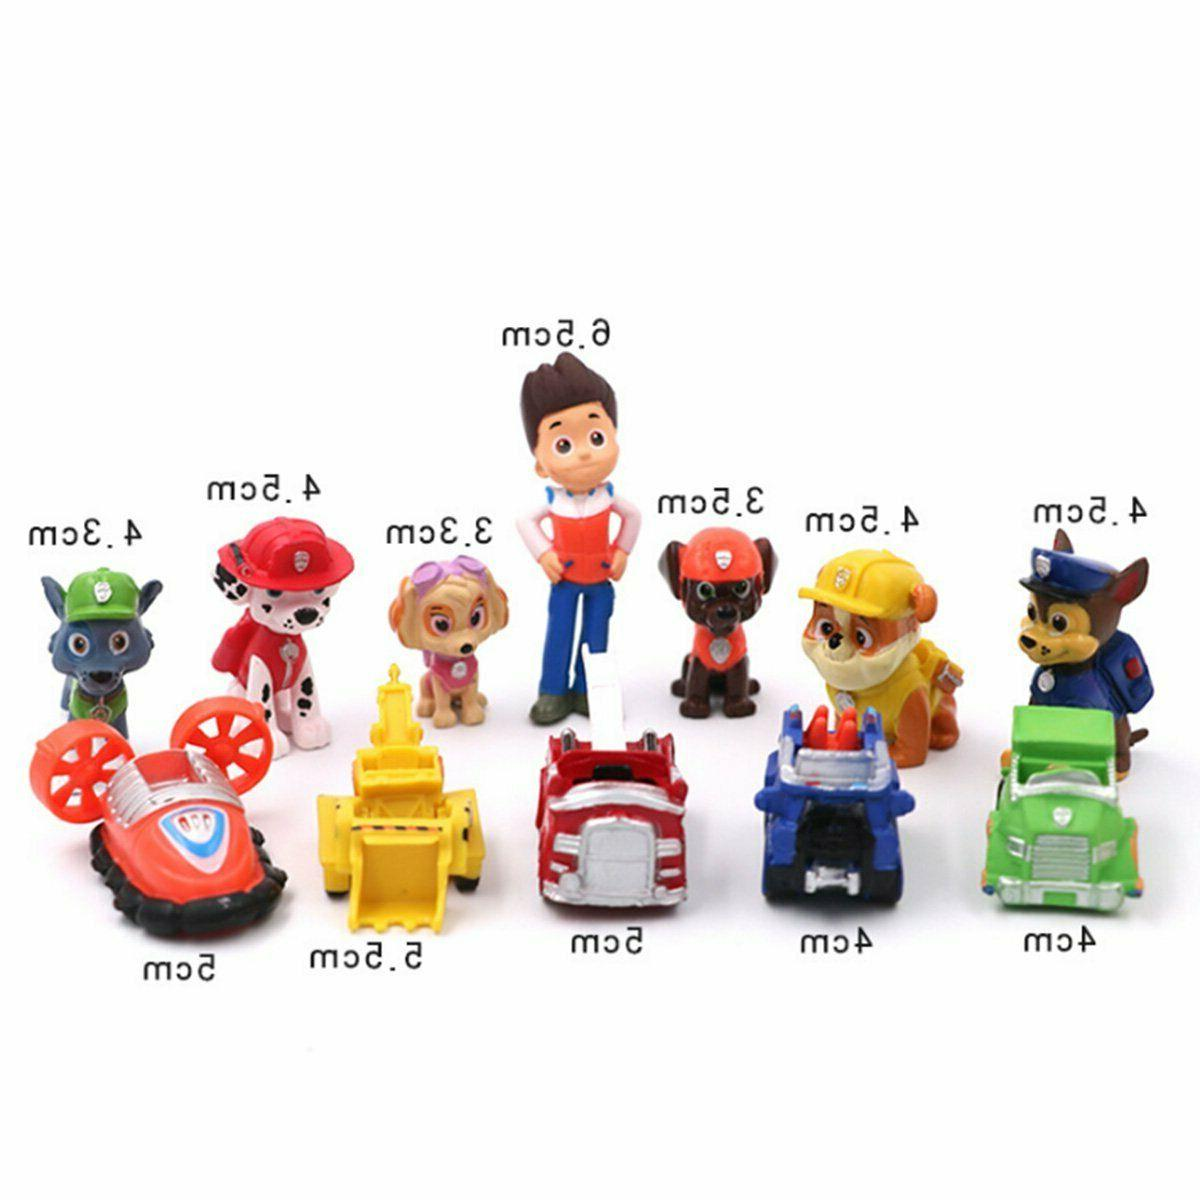 12 Ryder Pups & 5 Vehicles Toy Cake Toppers BULK